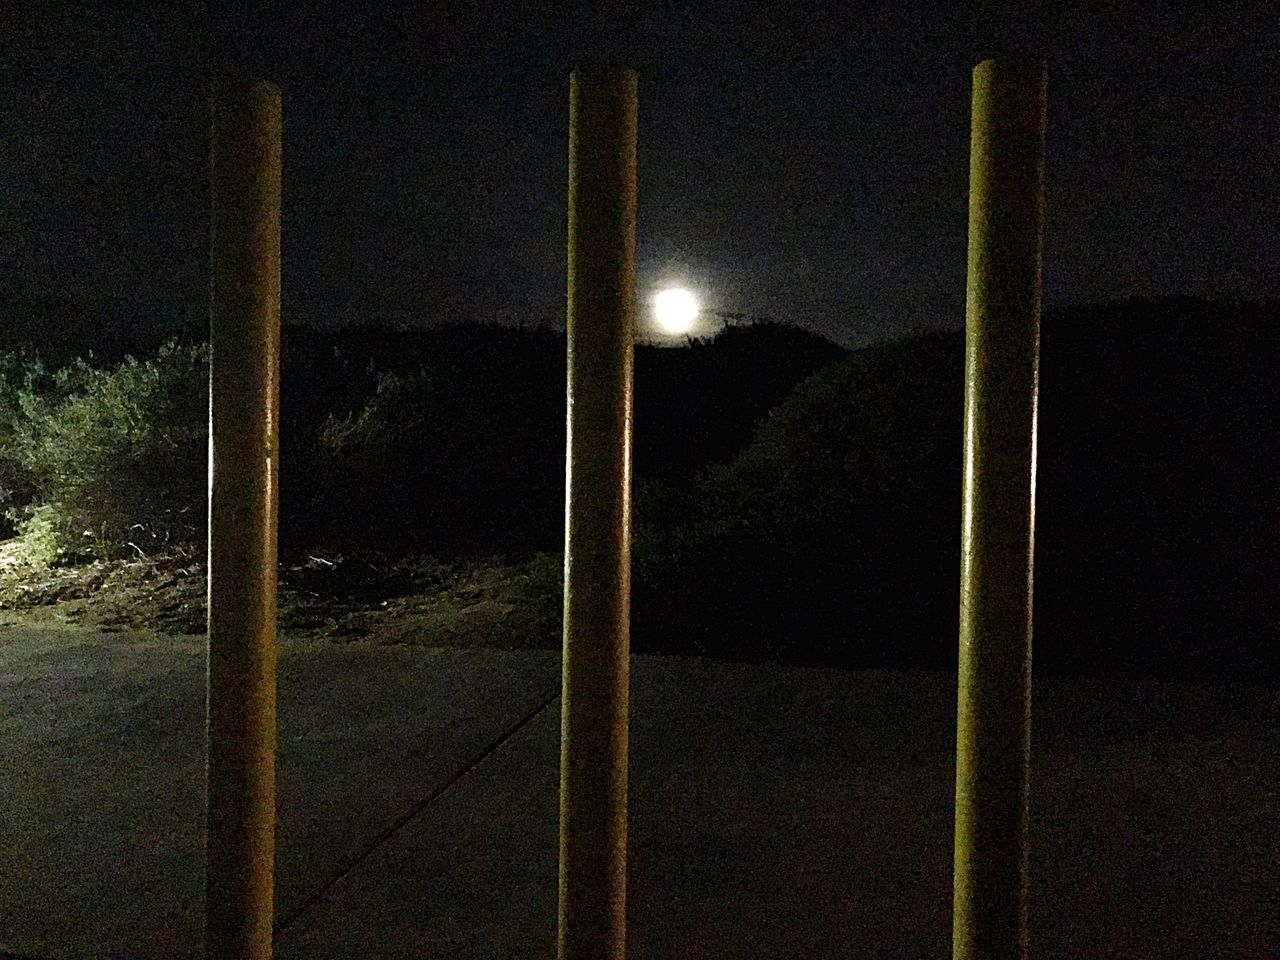 Breathe it in just follow me right to the end. Illuminated No People Nature Sky Tree Outdoors Moon Moonlight Moon Shots Moonshine Tranquility Iphonephotography IPhone Photography IPhone7Plus Iphone7 Photography Relaxation Morenovalley Sycamorecanyon Nature Pole Light The City Light